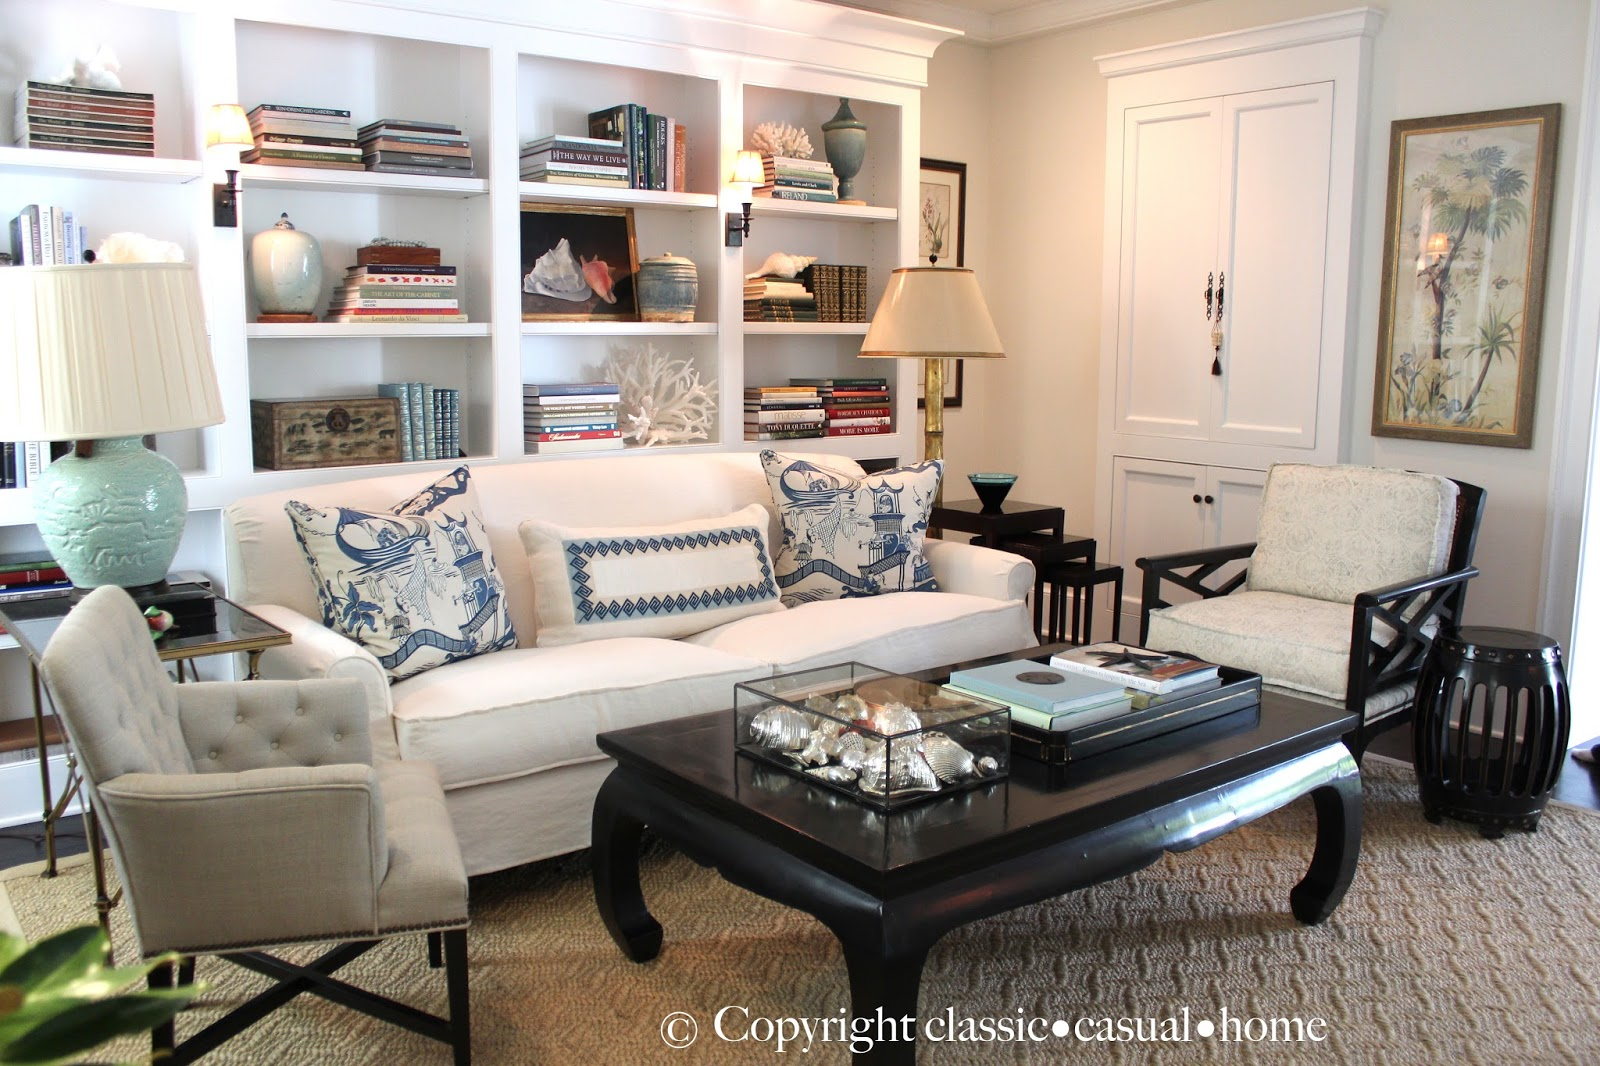 Casual Home essential decorating advice - classic casual home